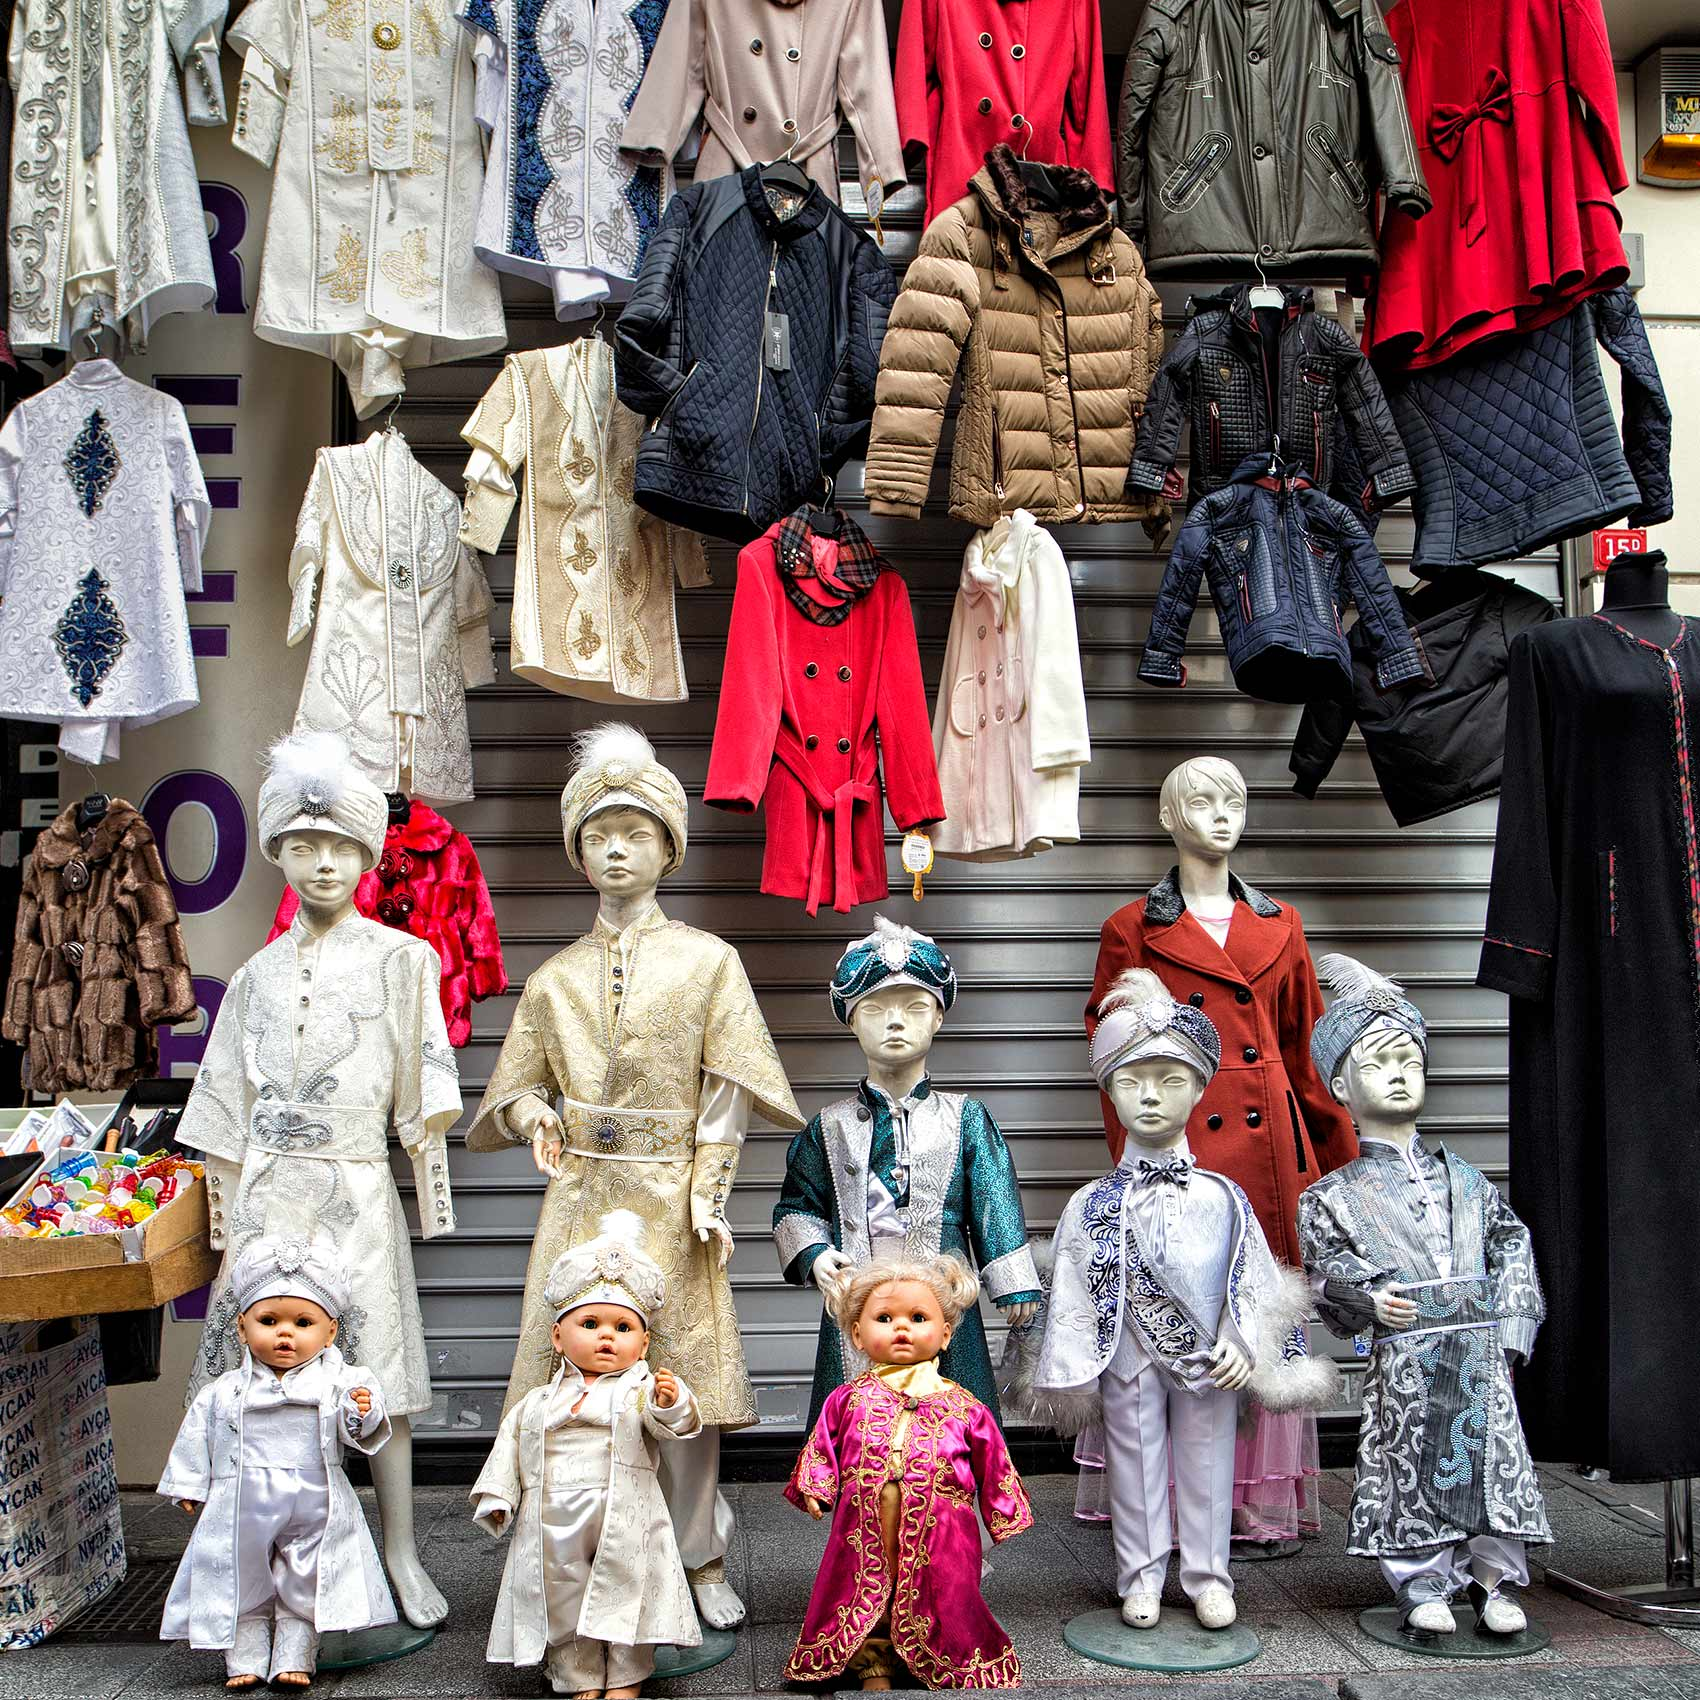 mannequins-wearing-childrens-clothing-in-front-of-a-istanbul-storefront